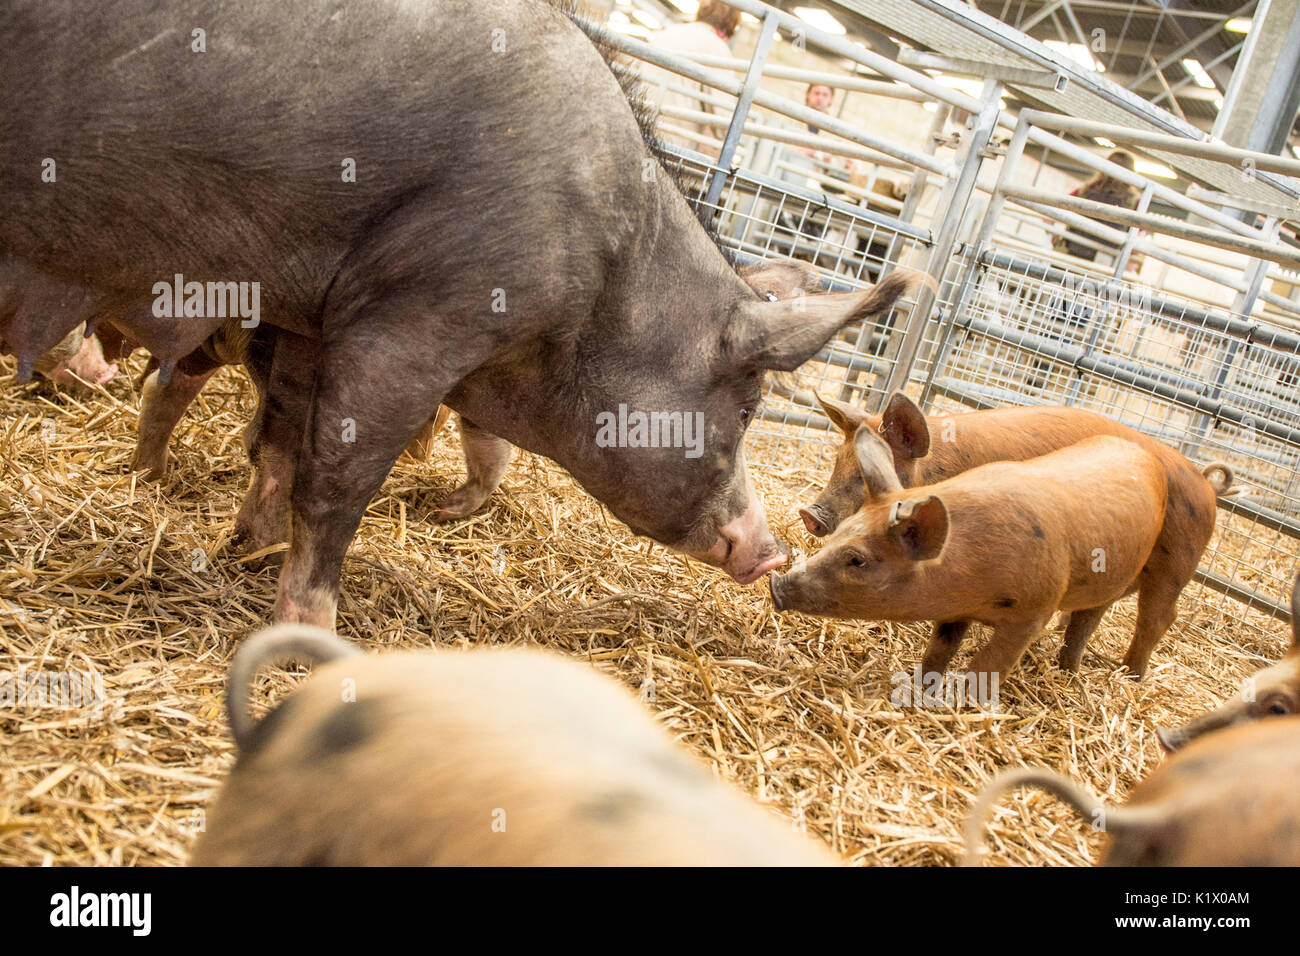 pigs at market - Stock Image